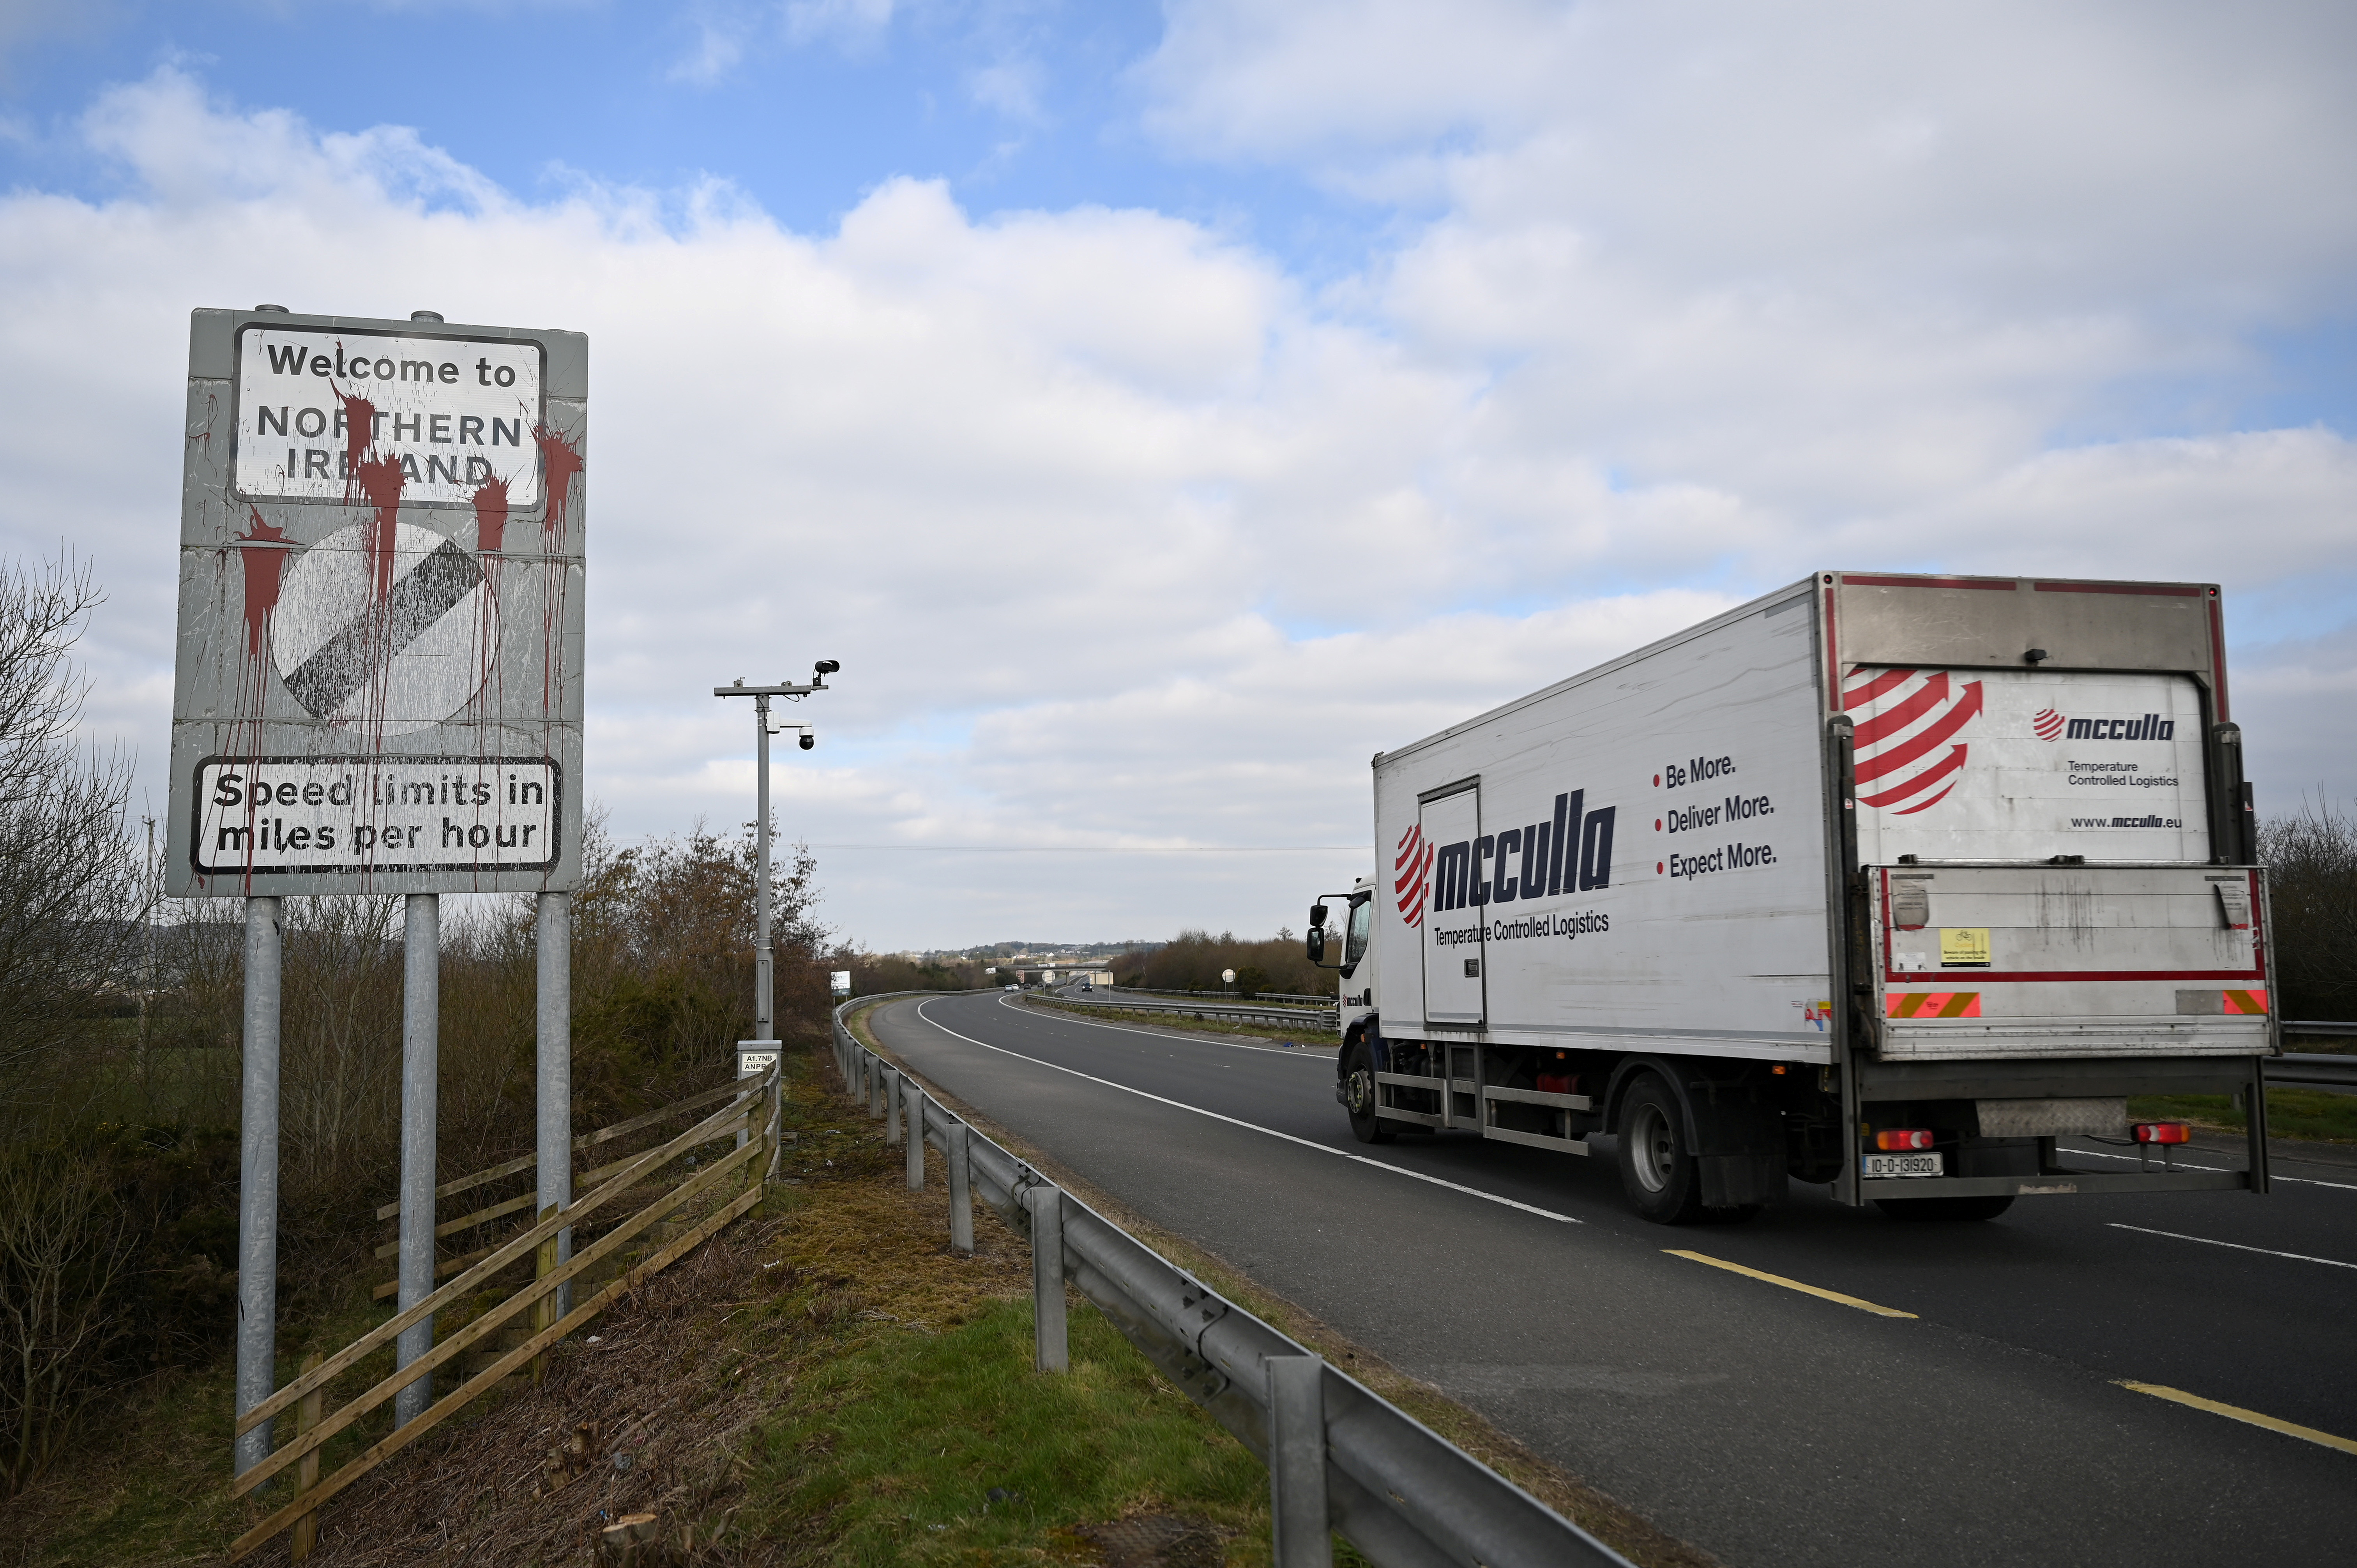 A truck drives past a defaced 'Welcome to Northern Ireland' sign on the Ireland and Northern Ireland border in Carrickcarnan, Ireland, March 6, 2021. REUTERS/Clodagh Kilcoyne/File Photo